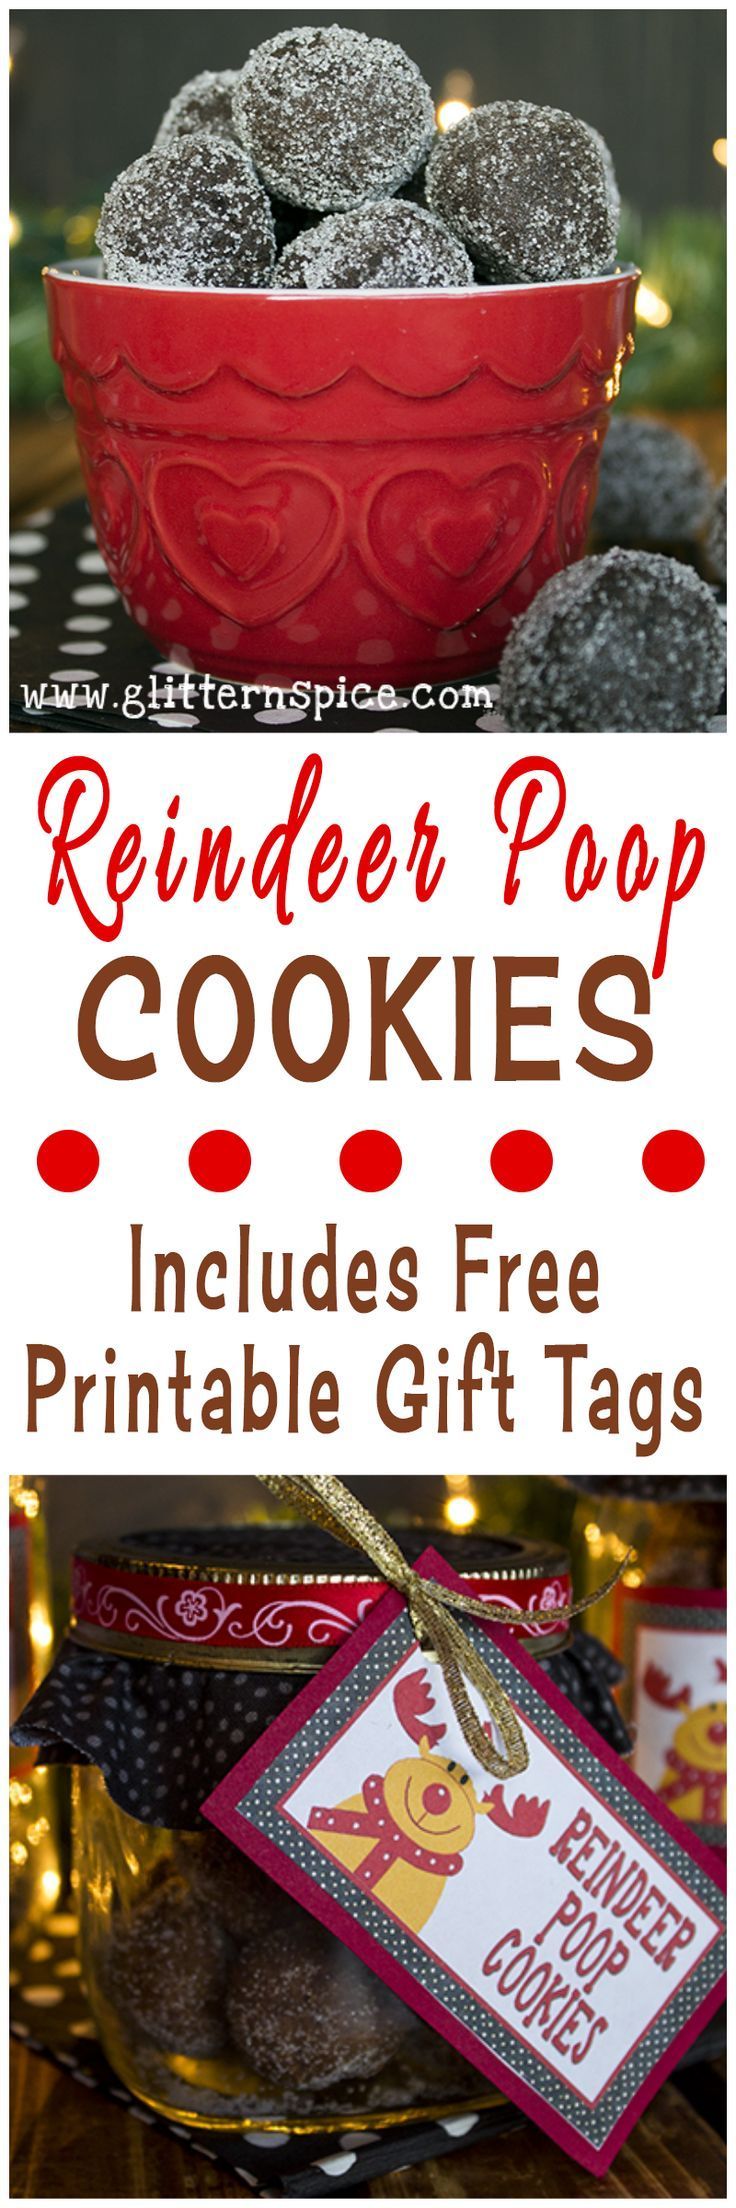 Reindeer Poop Cookies And Free Printable Gift Tags